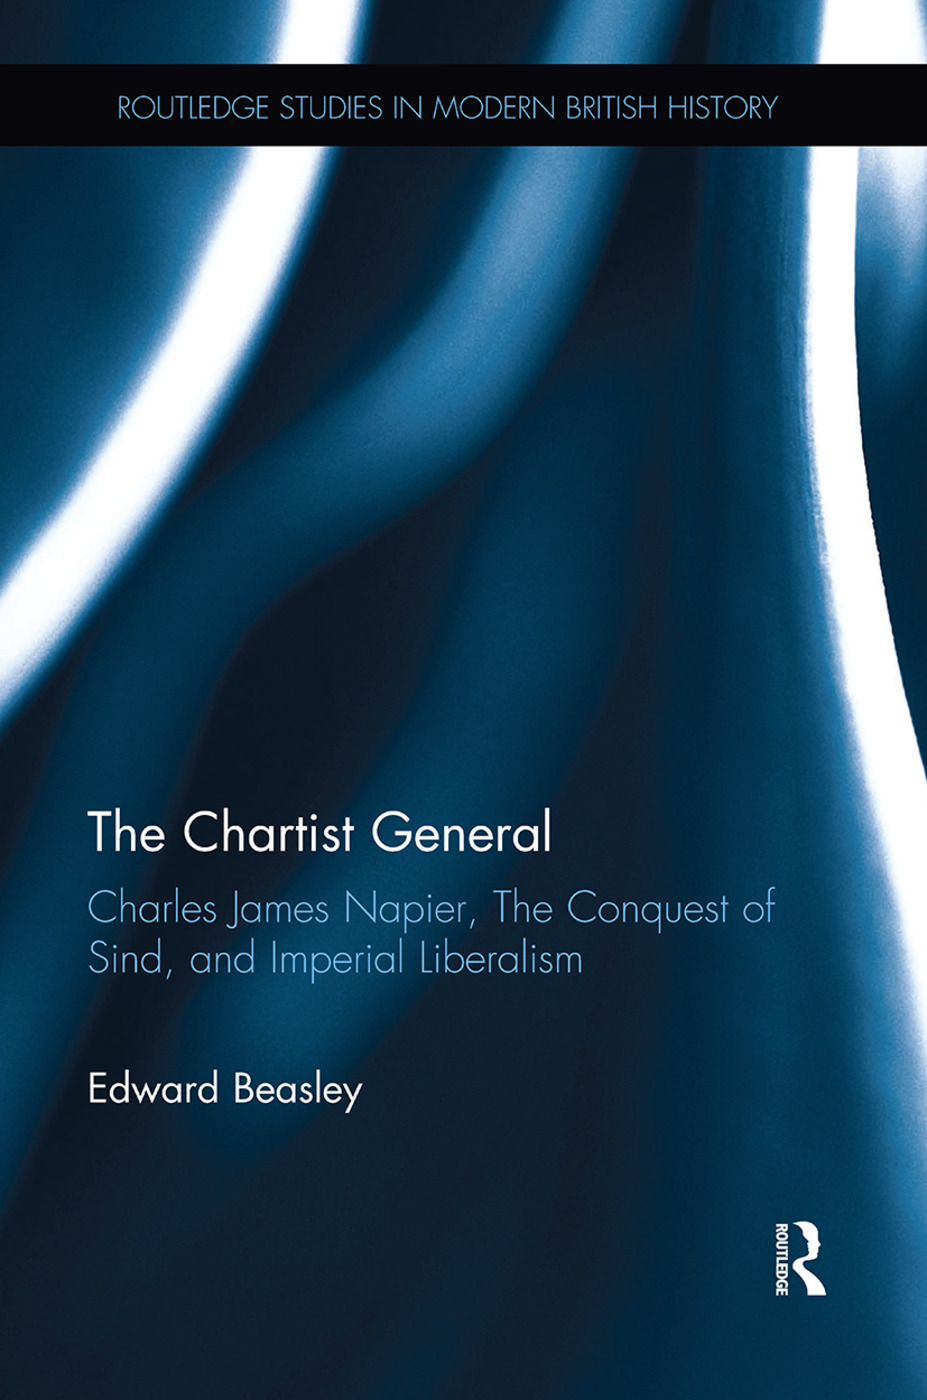 The Chartist General: Charles James Napier, The Conquest of Sind, and Imperial Liberalism book cover